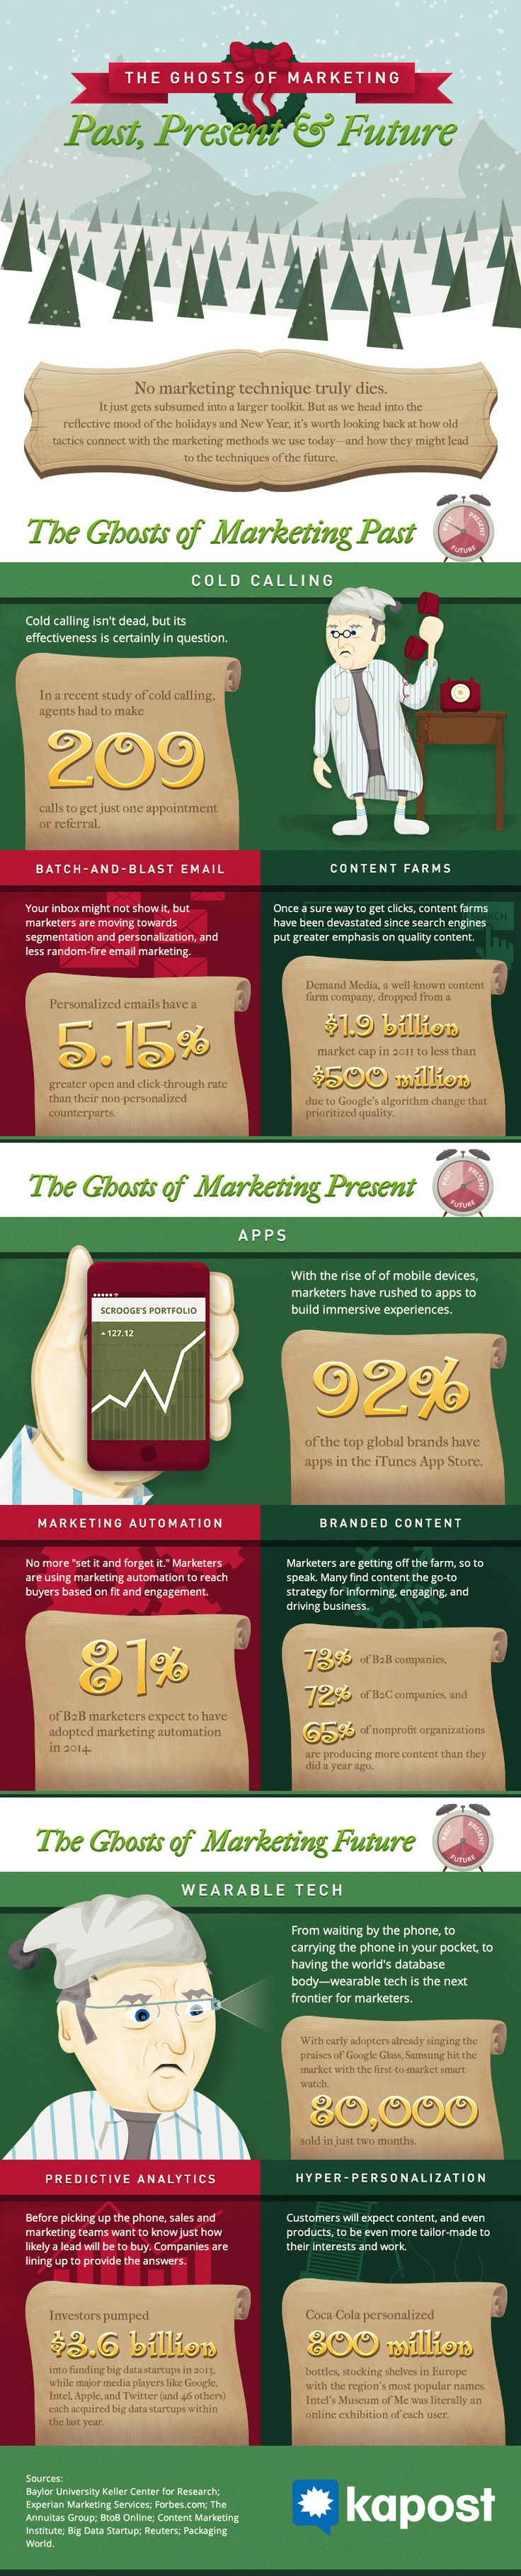 The goal of our infographic was to take a snapshot of the past, the present, and not-too-distant future of marketing. We hope you like it. And as our gift to marketers everywhere, we included the embed code below so you can share the infographic freely on your blog or site.  Happy Holidays! And very happy New Year, marketers!